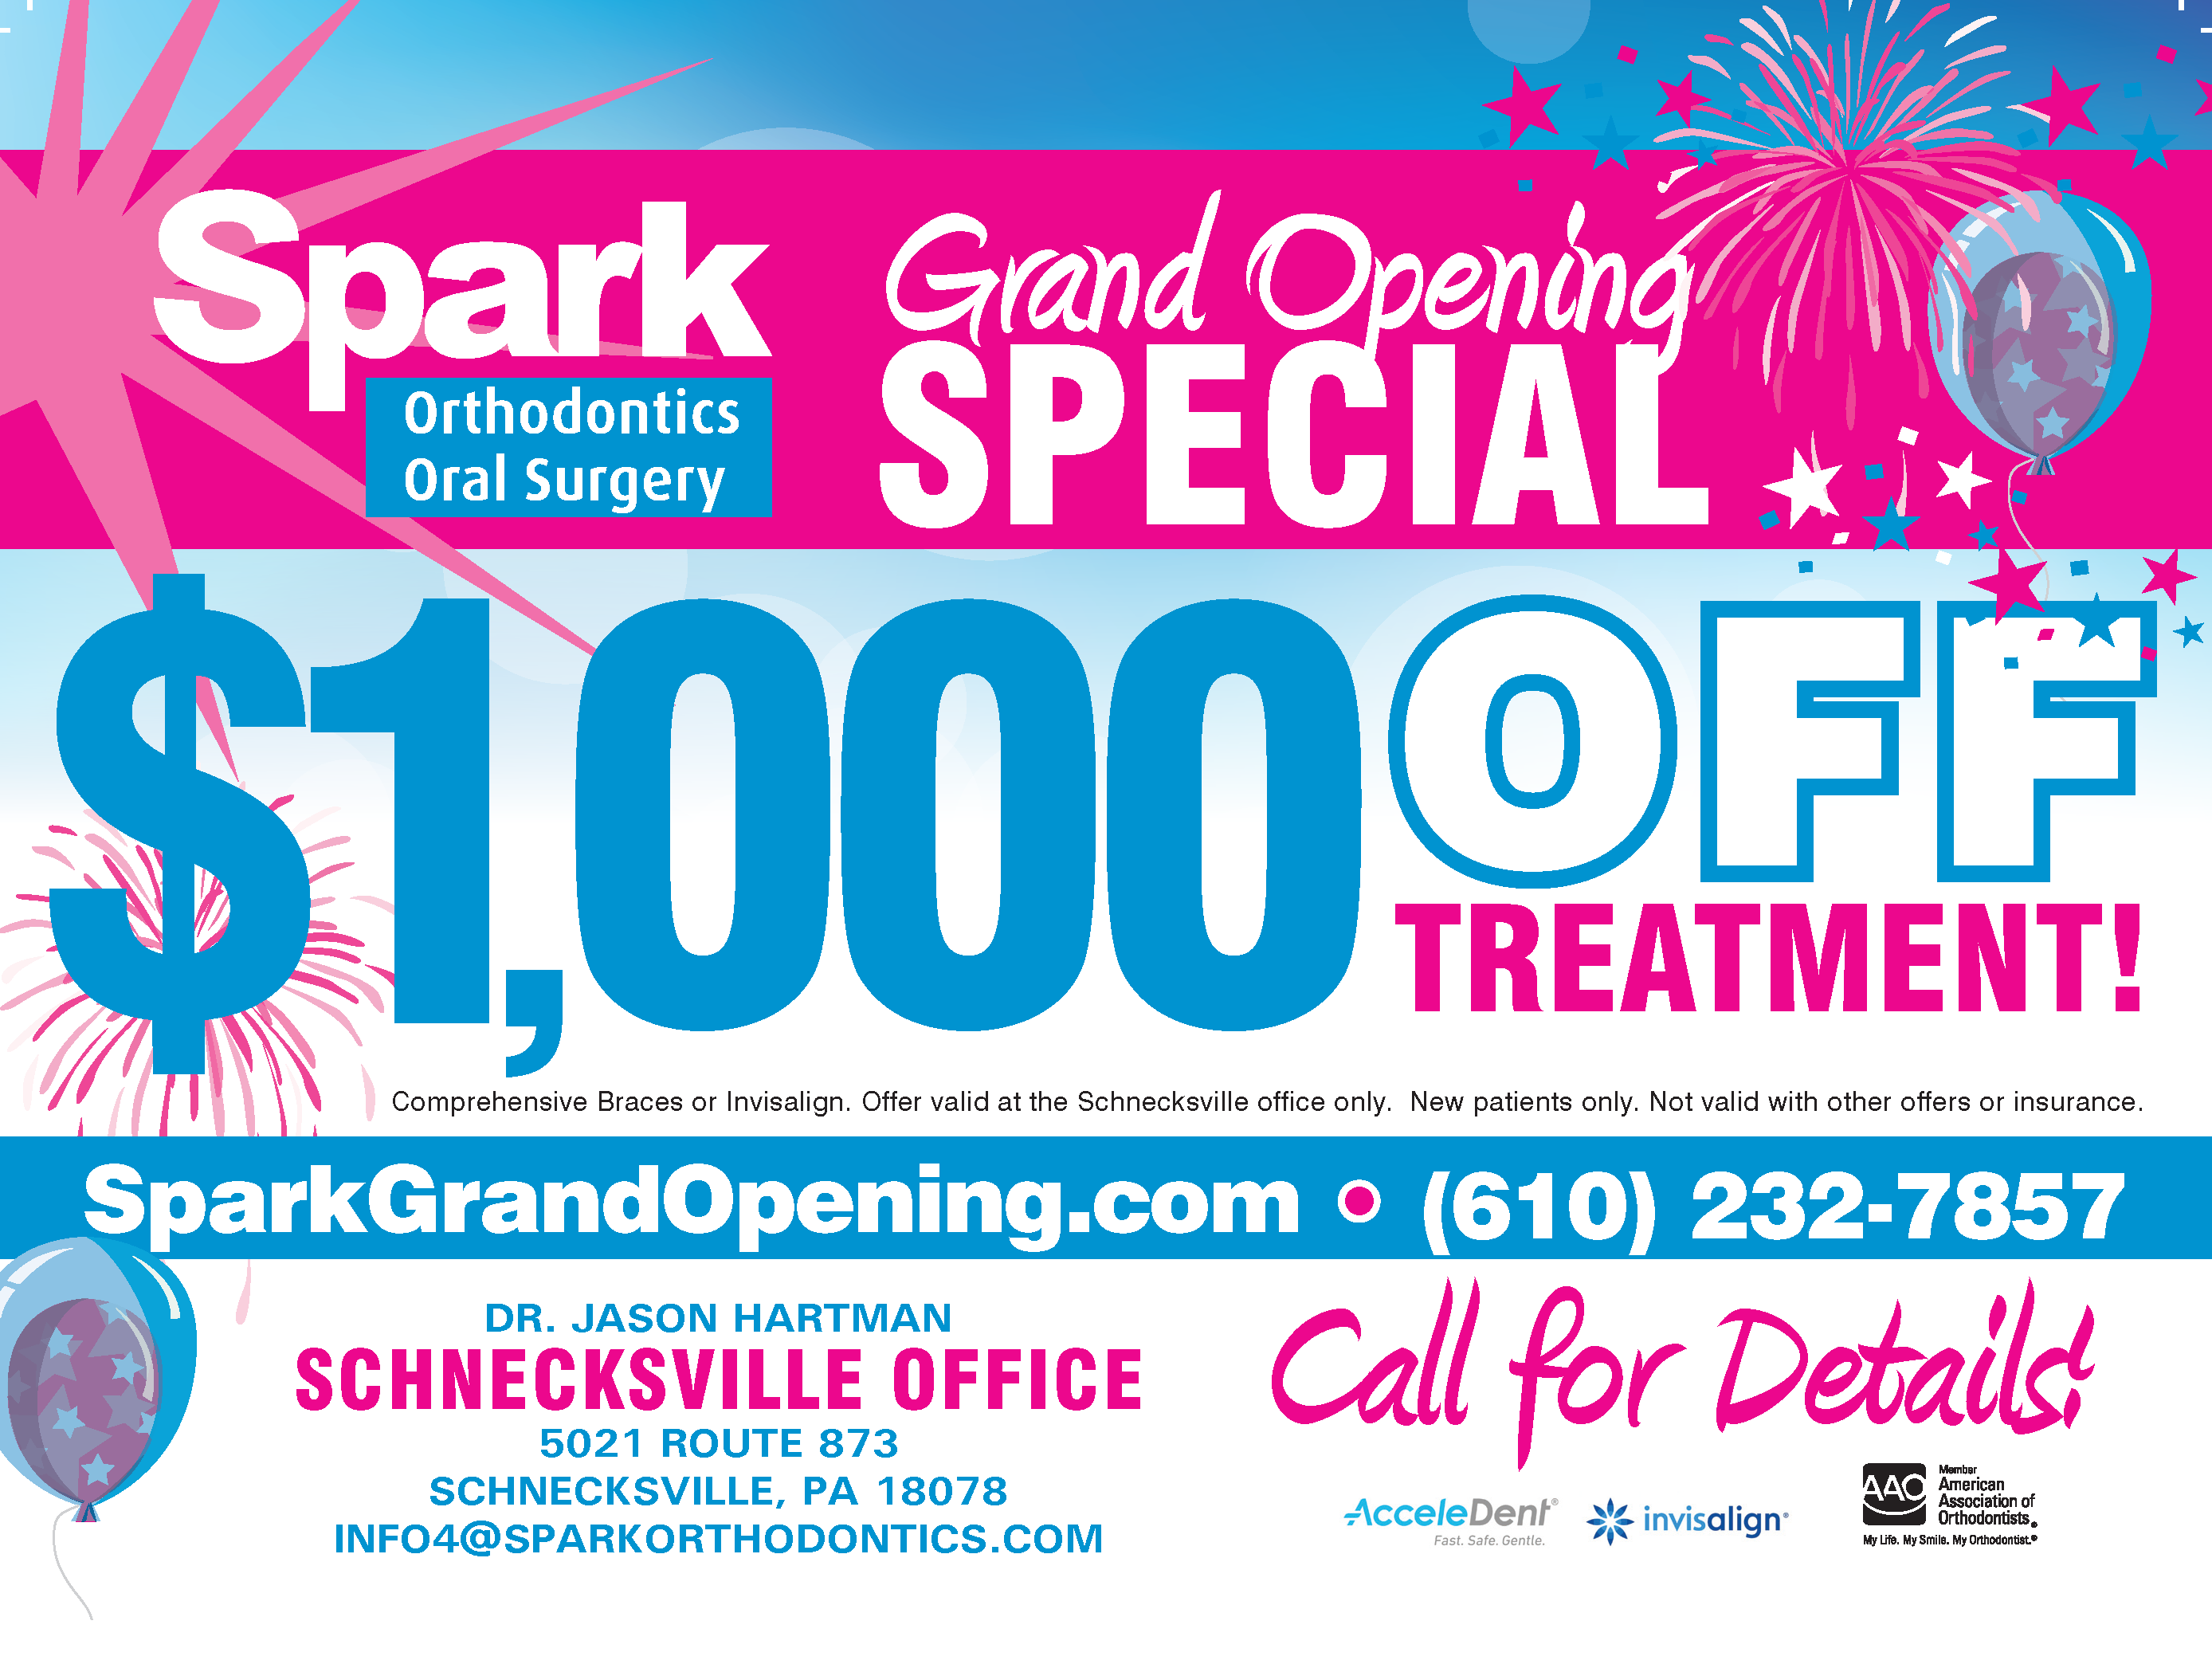 spark orthodontics grand opening